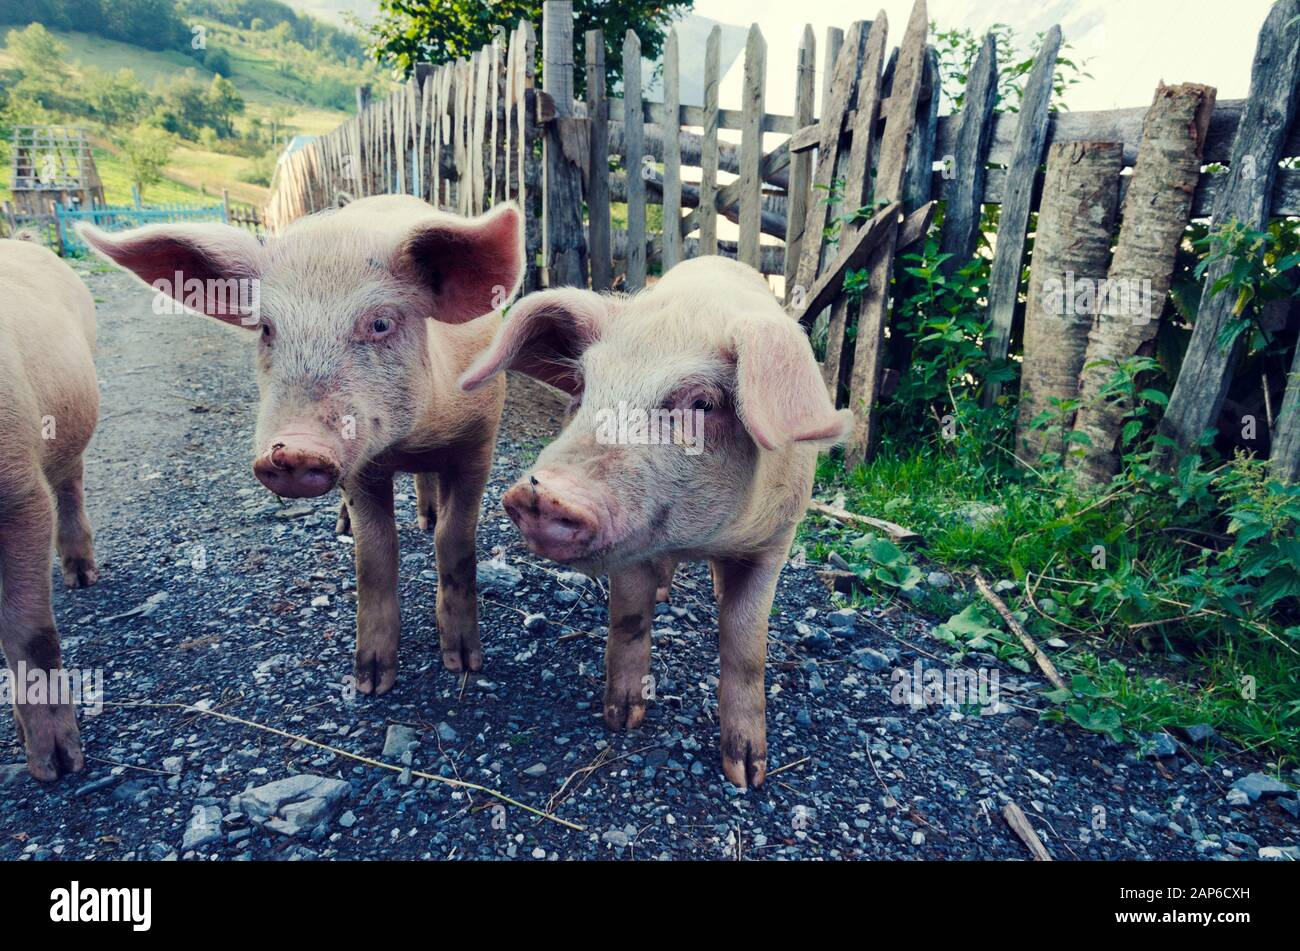 Pigs on a pig farm in Albania. Selective focus Stock Photo